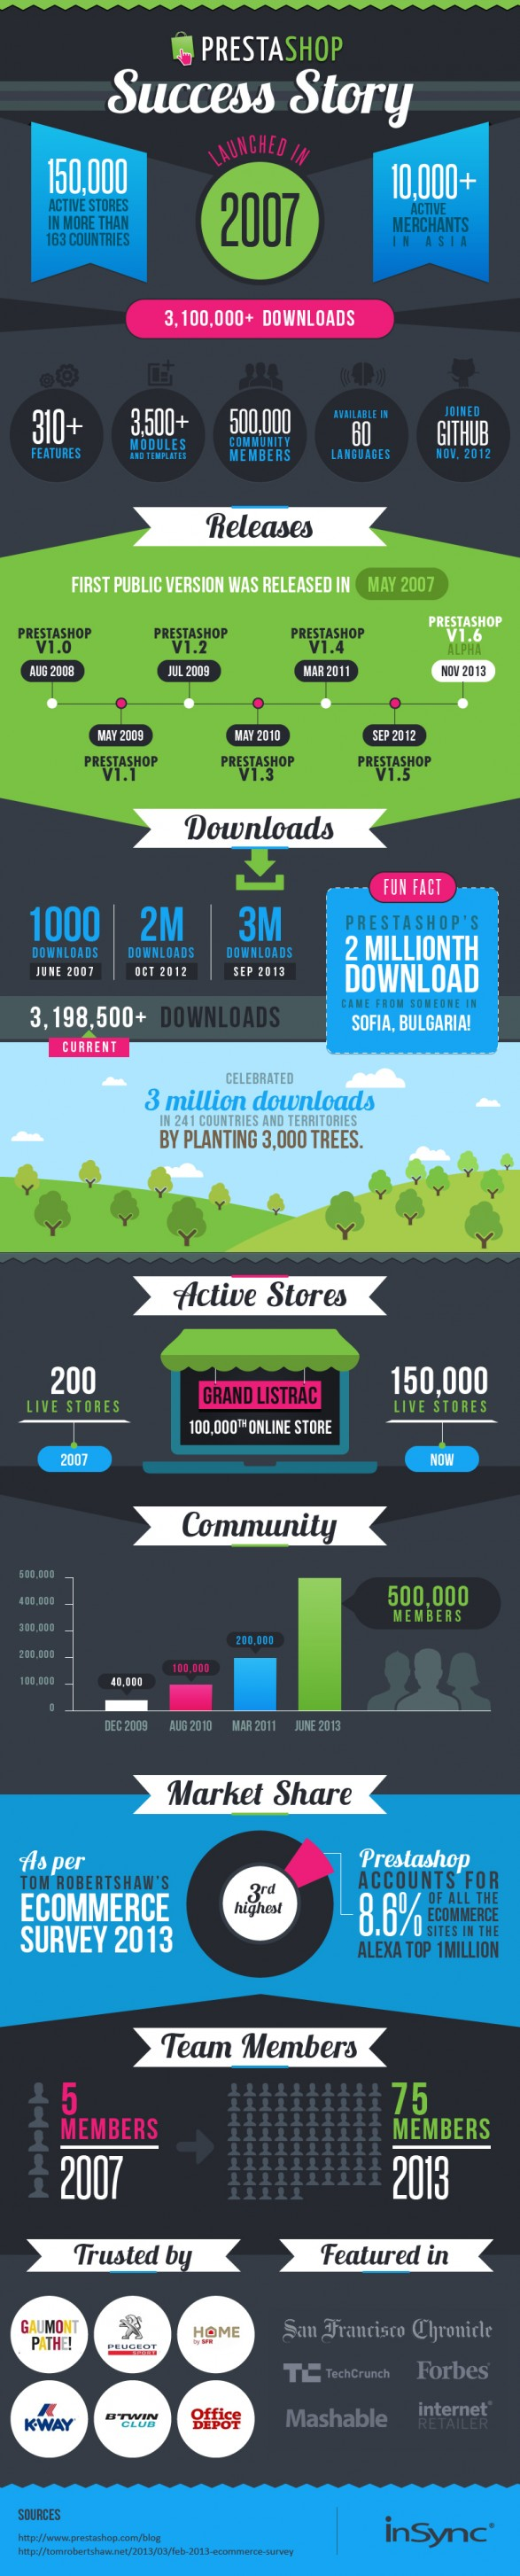 Infographic: The PrestaShop Success Story http://bit.ly/1eVSDR2